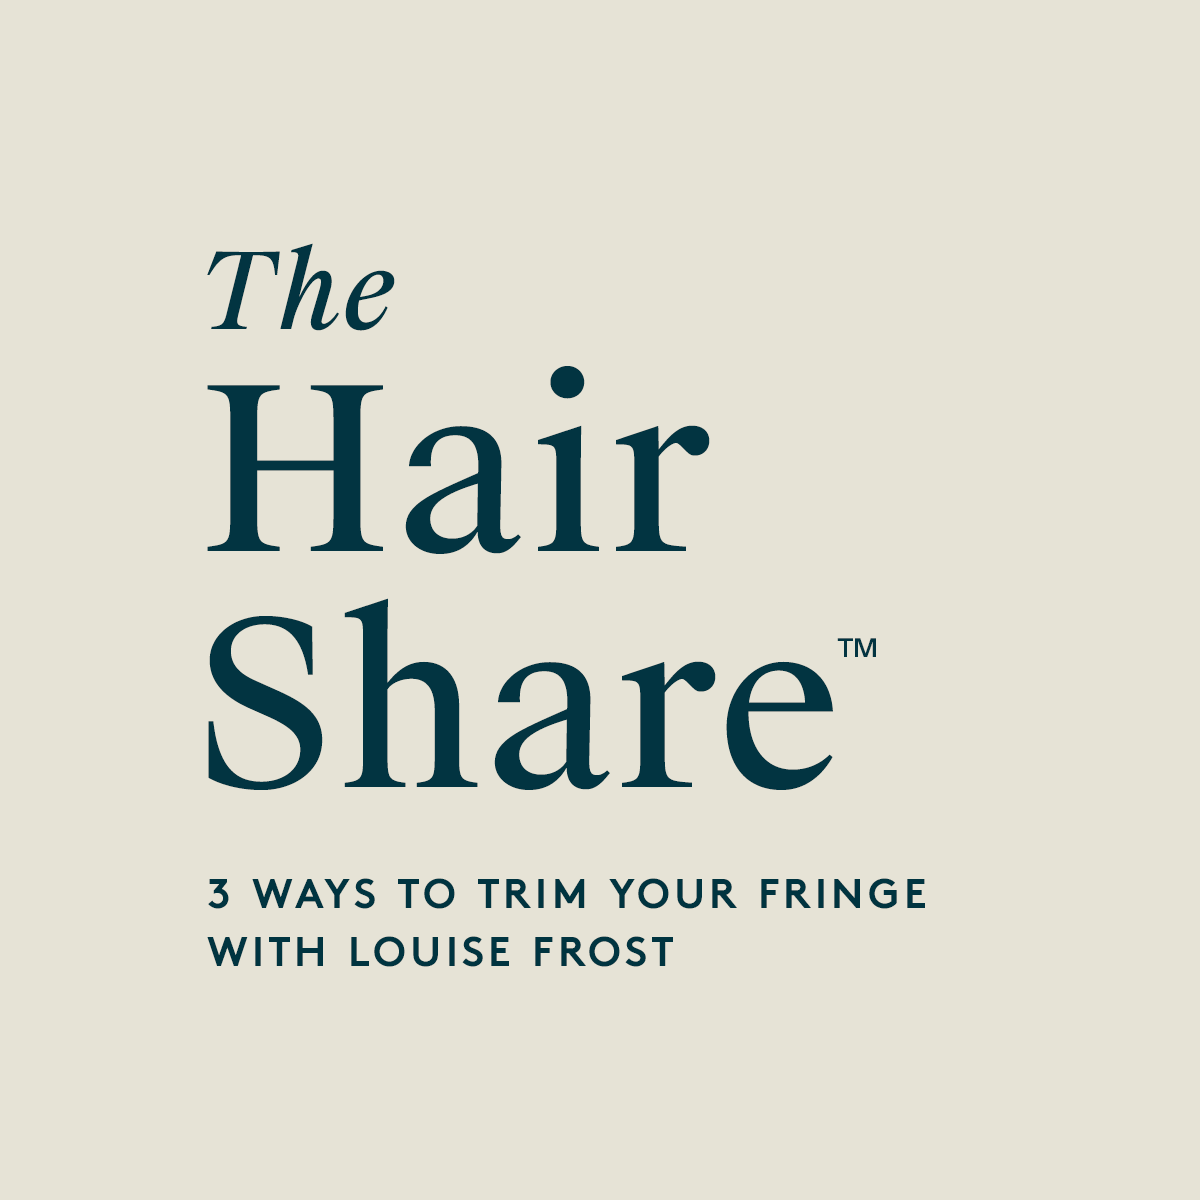 The Hair Share